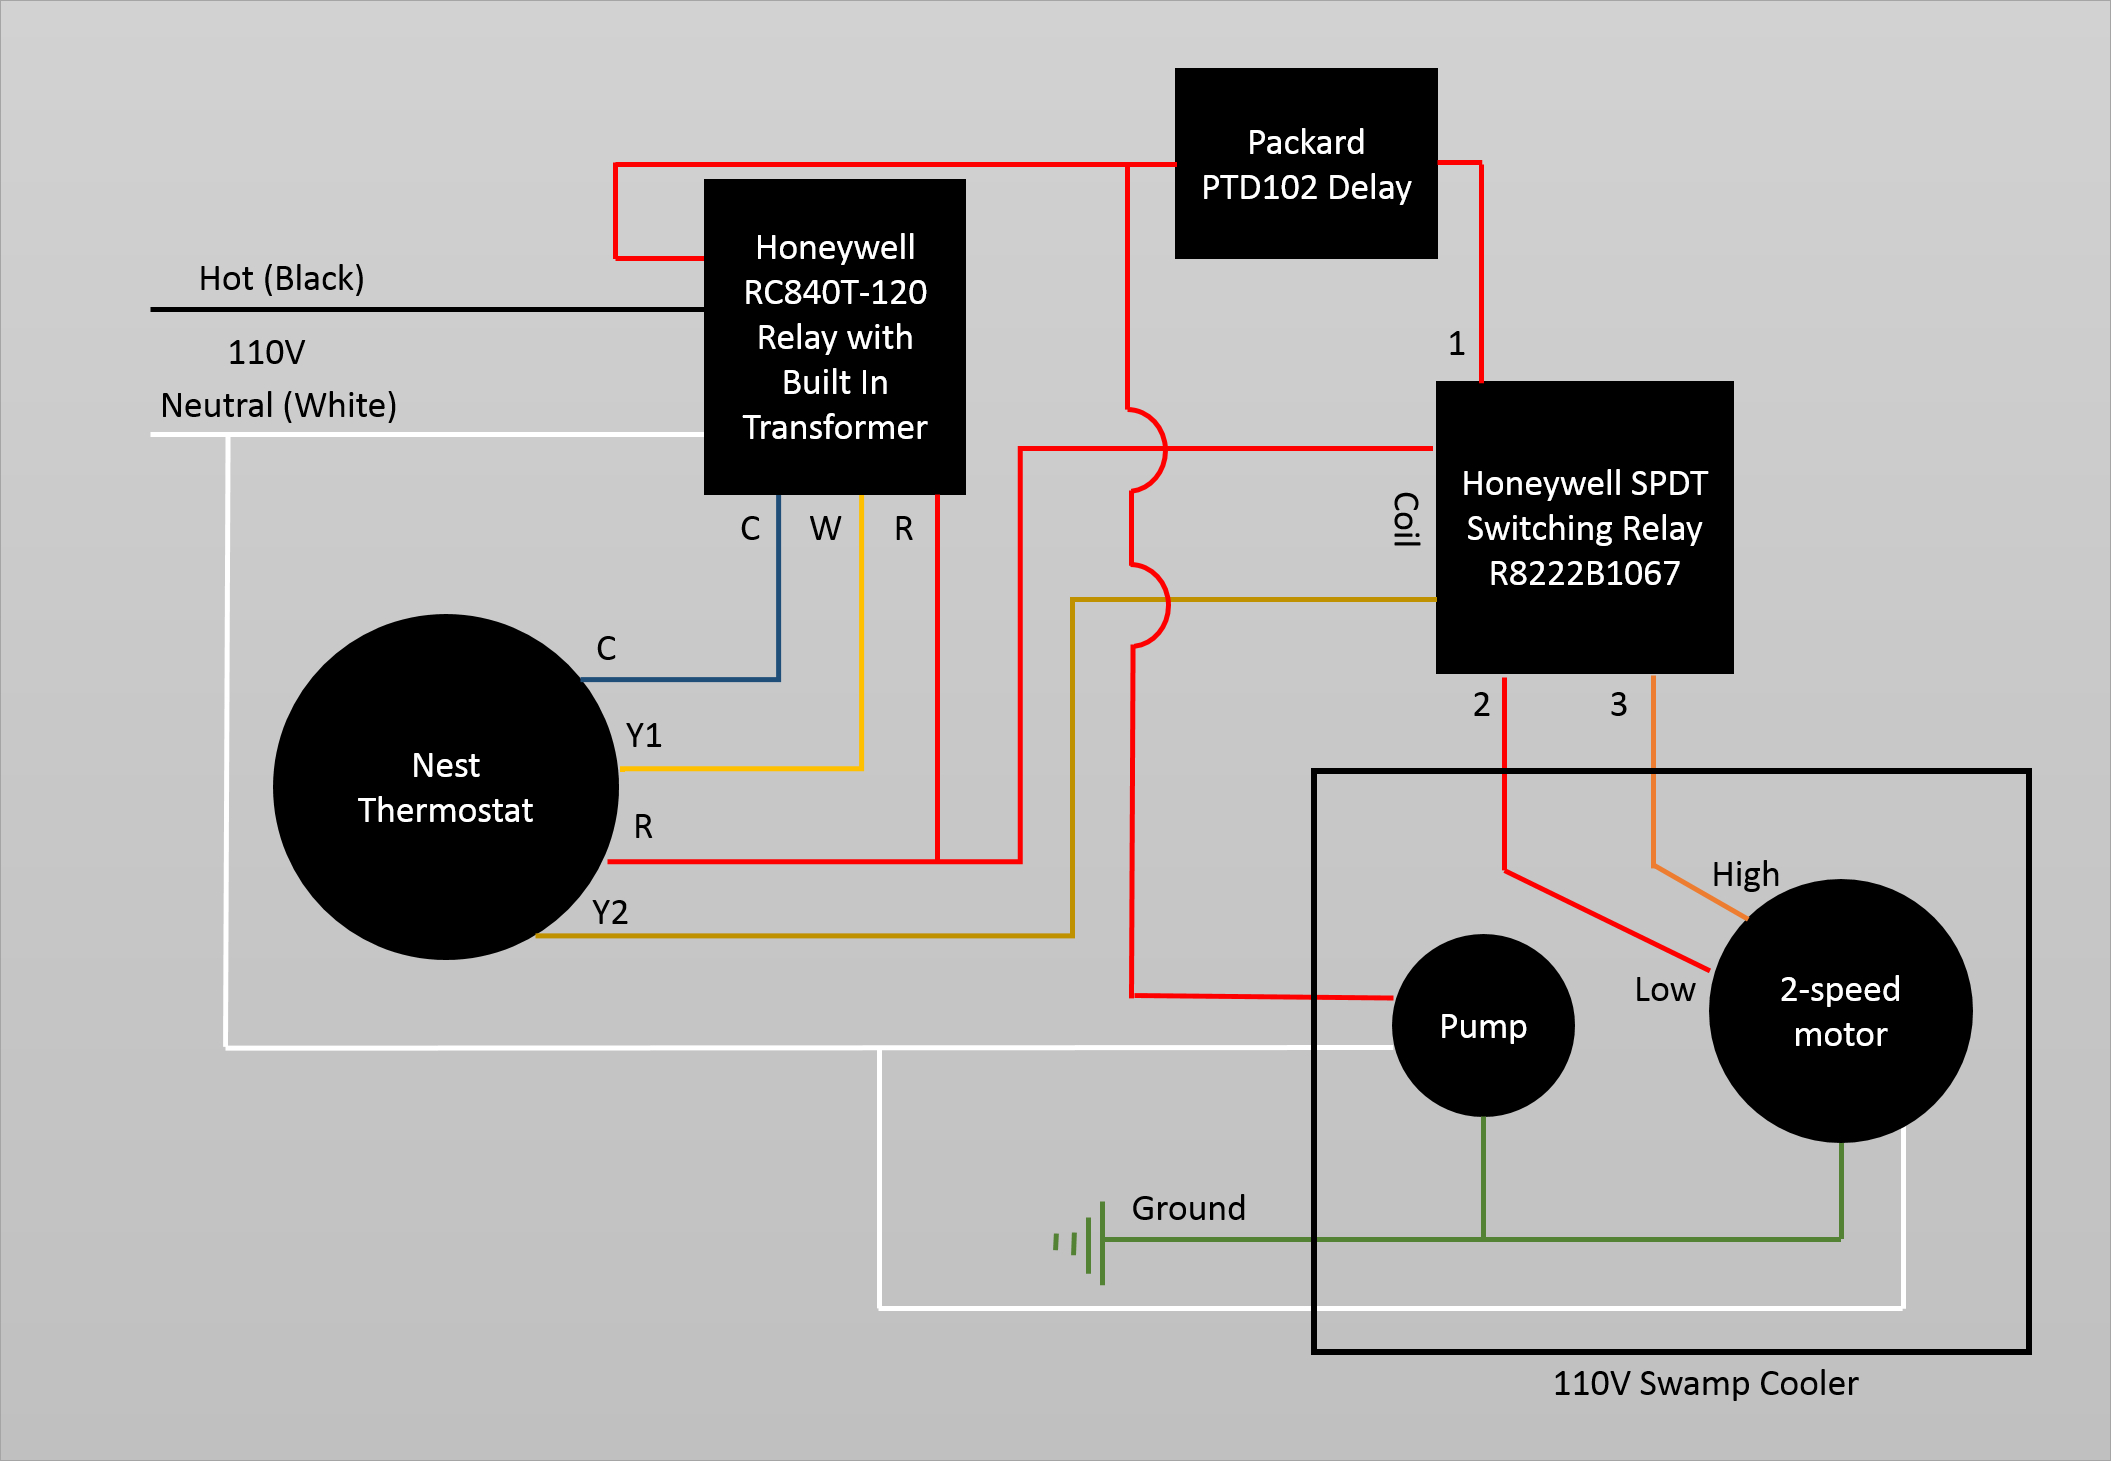 Wiring - Controlling 110V Swamp Cooler Using Nest Thermostat - Home - Replace Emerson Thermostat With Nest Wiring Diagram